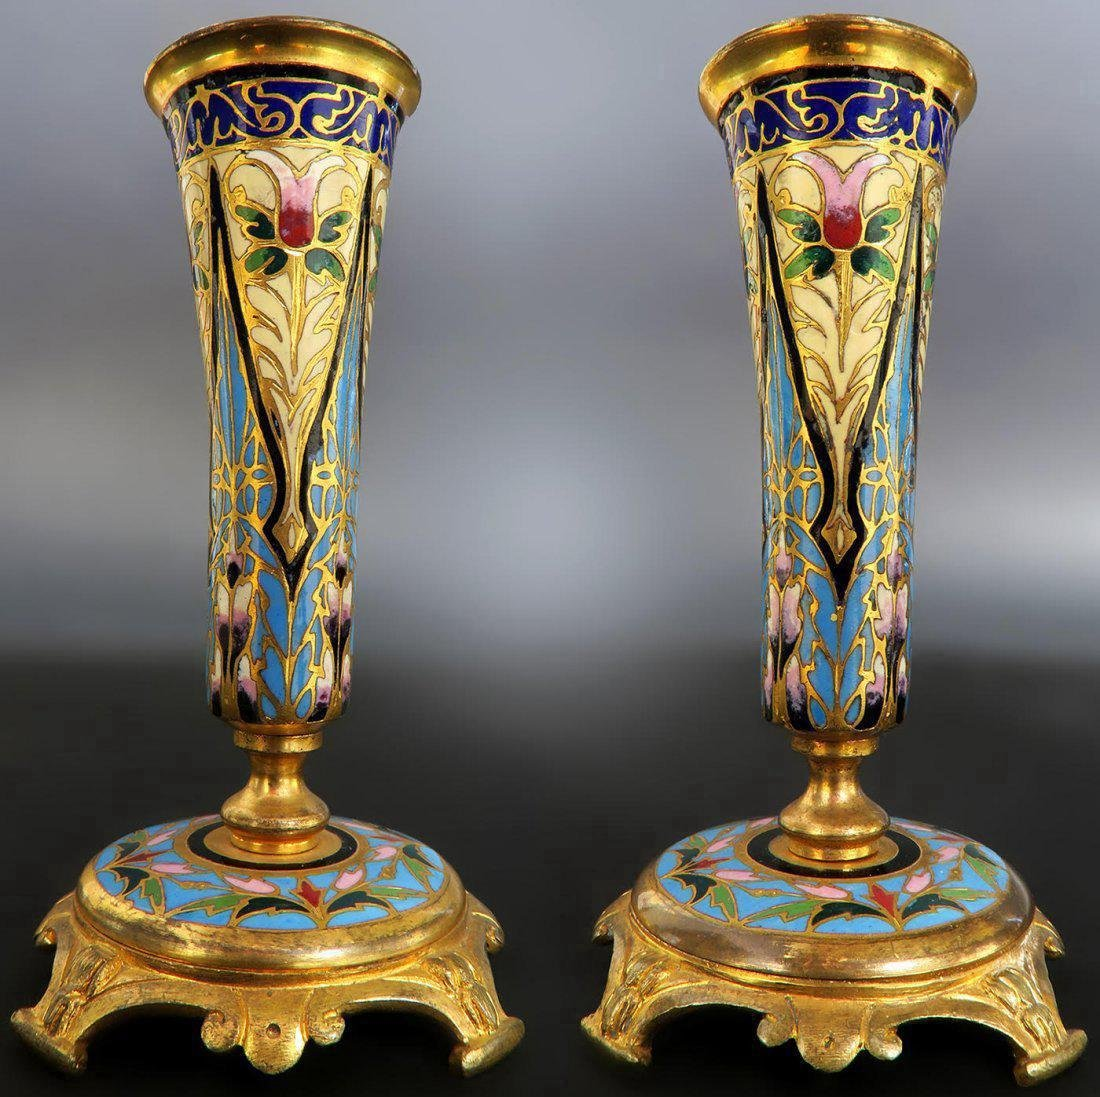 19th C. Pair of French Bronze & Champleve Vases